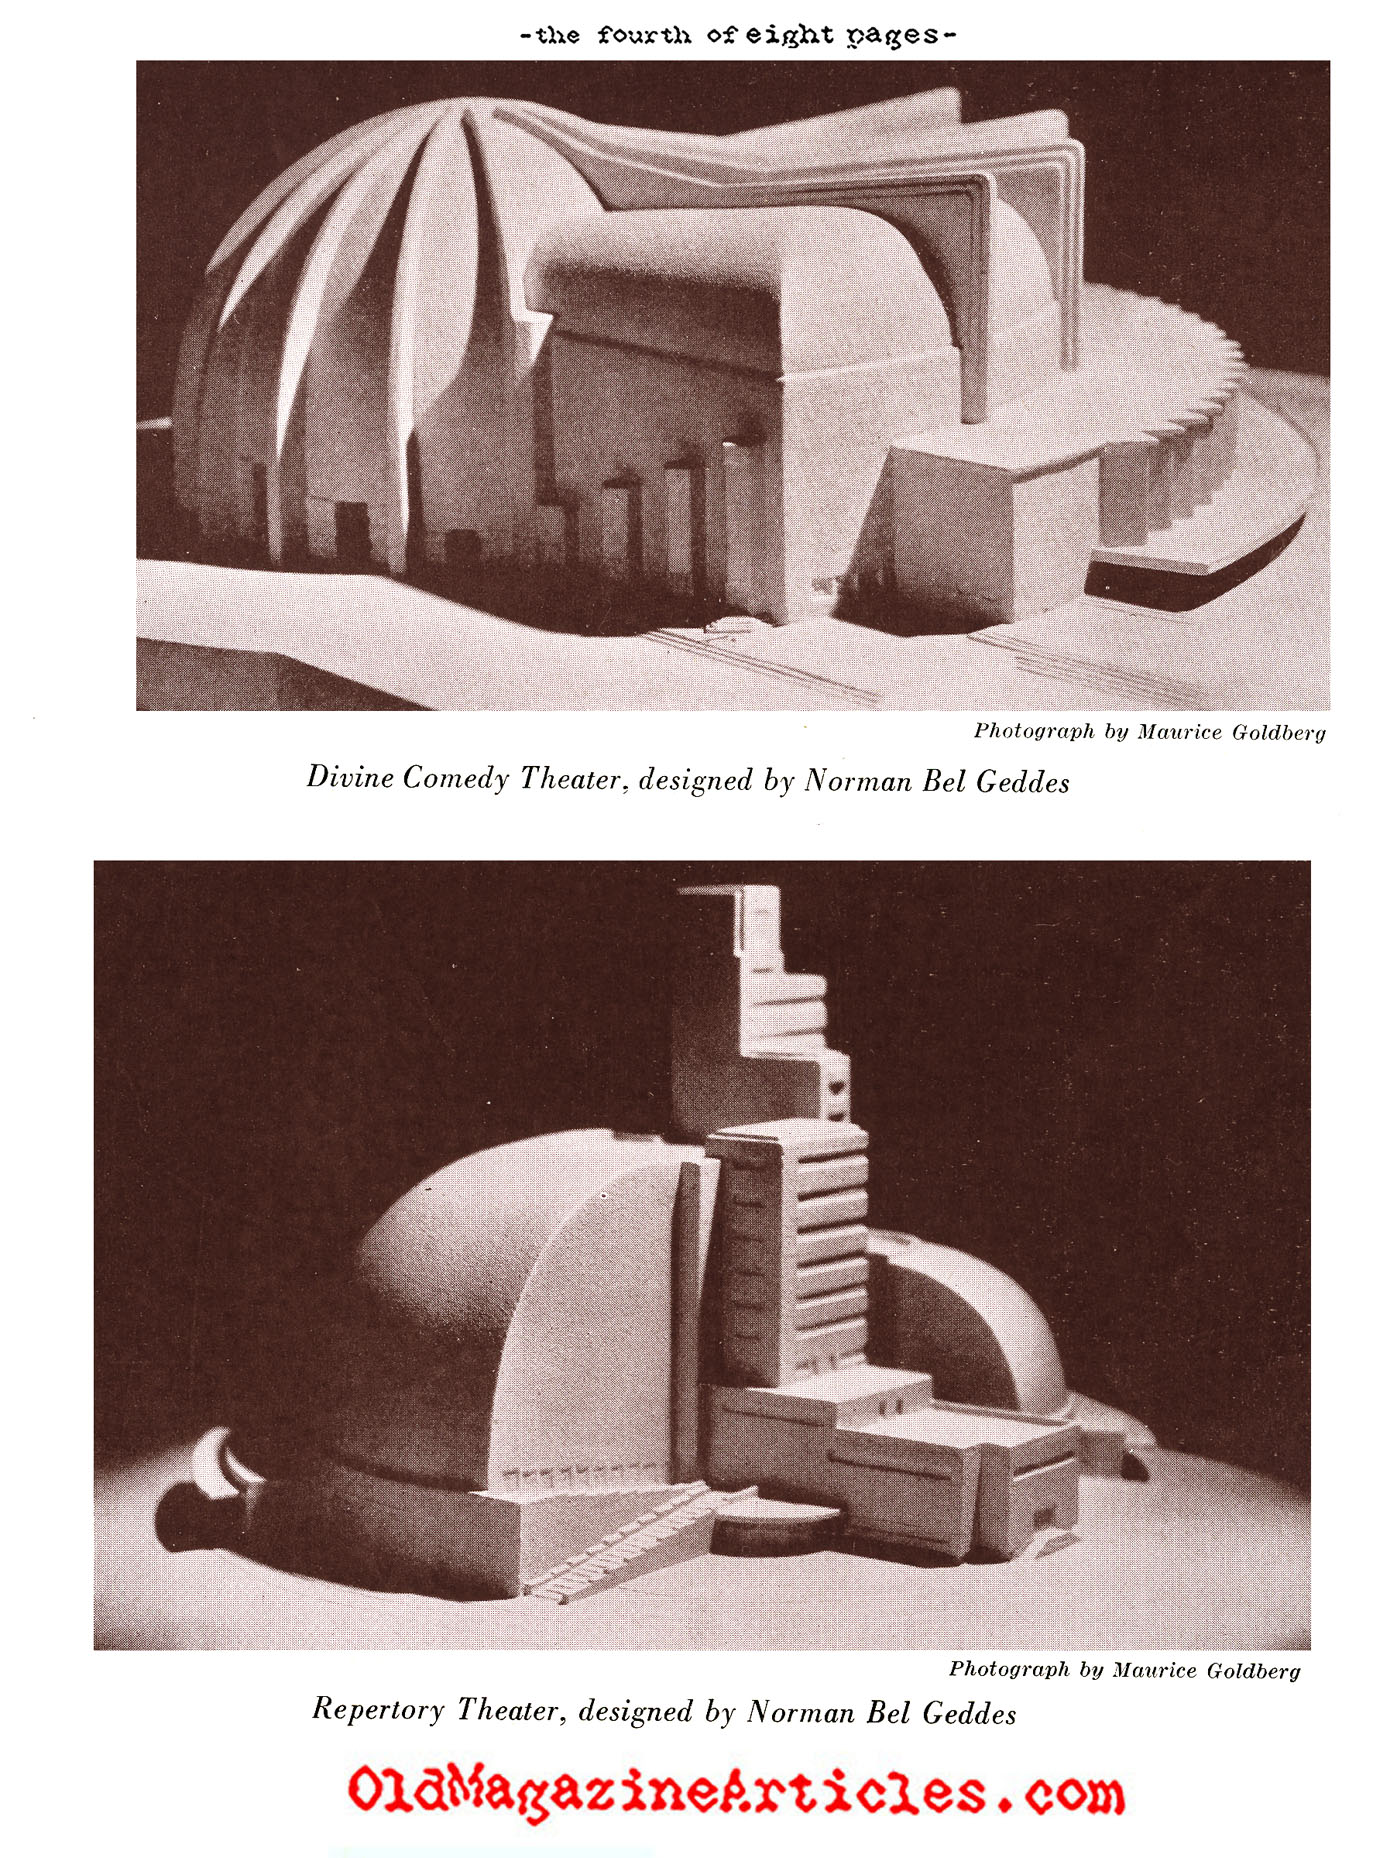 Norman Bel Geddes (Creative Art Magazine, 1933)